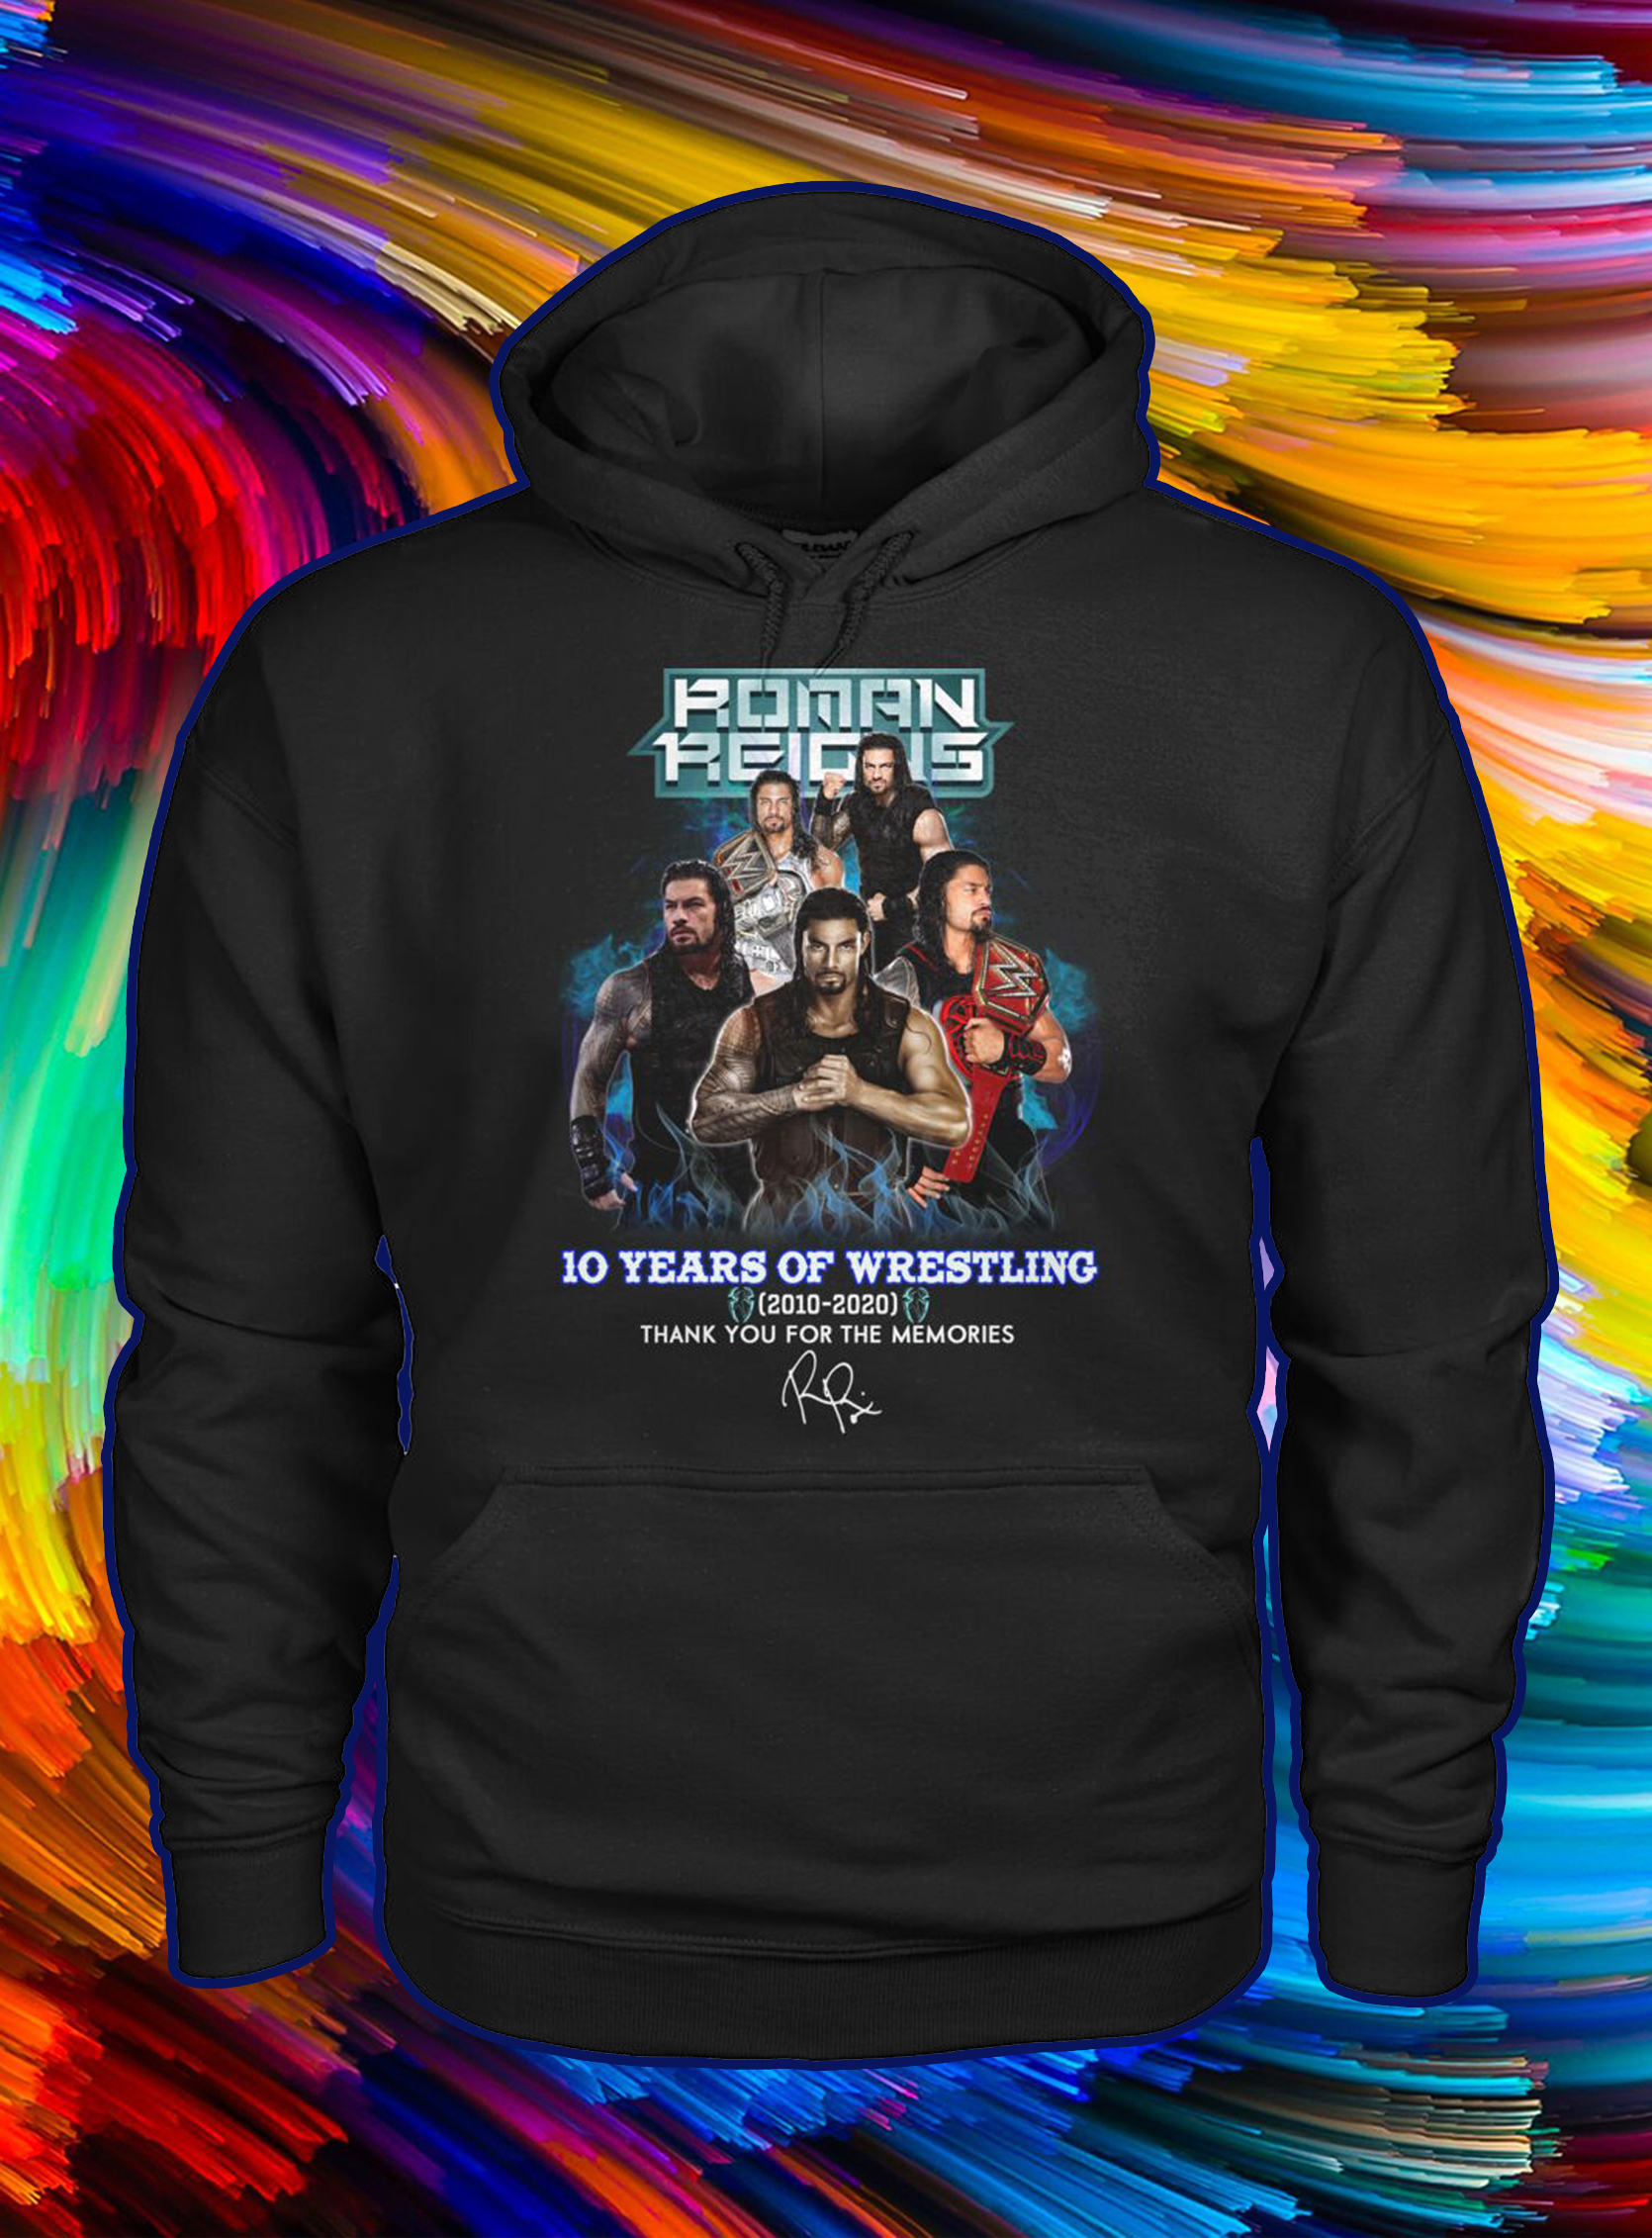 Roman reigns 10 years of wrestling thank you for the memories hoodie